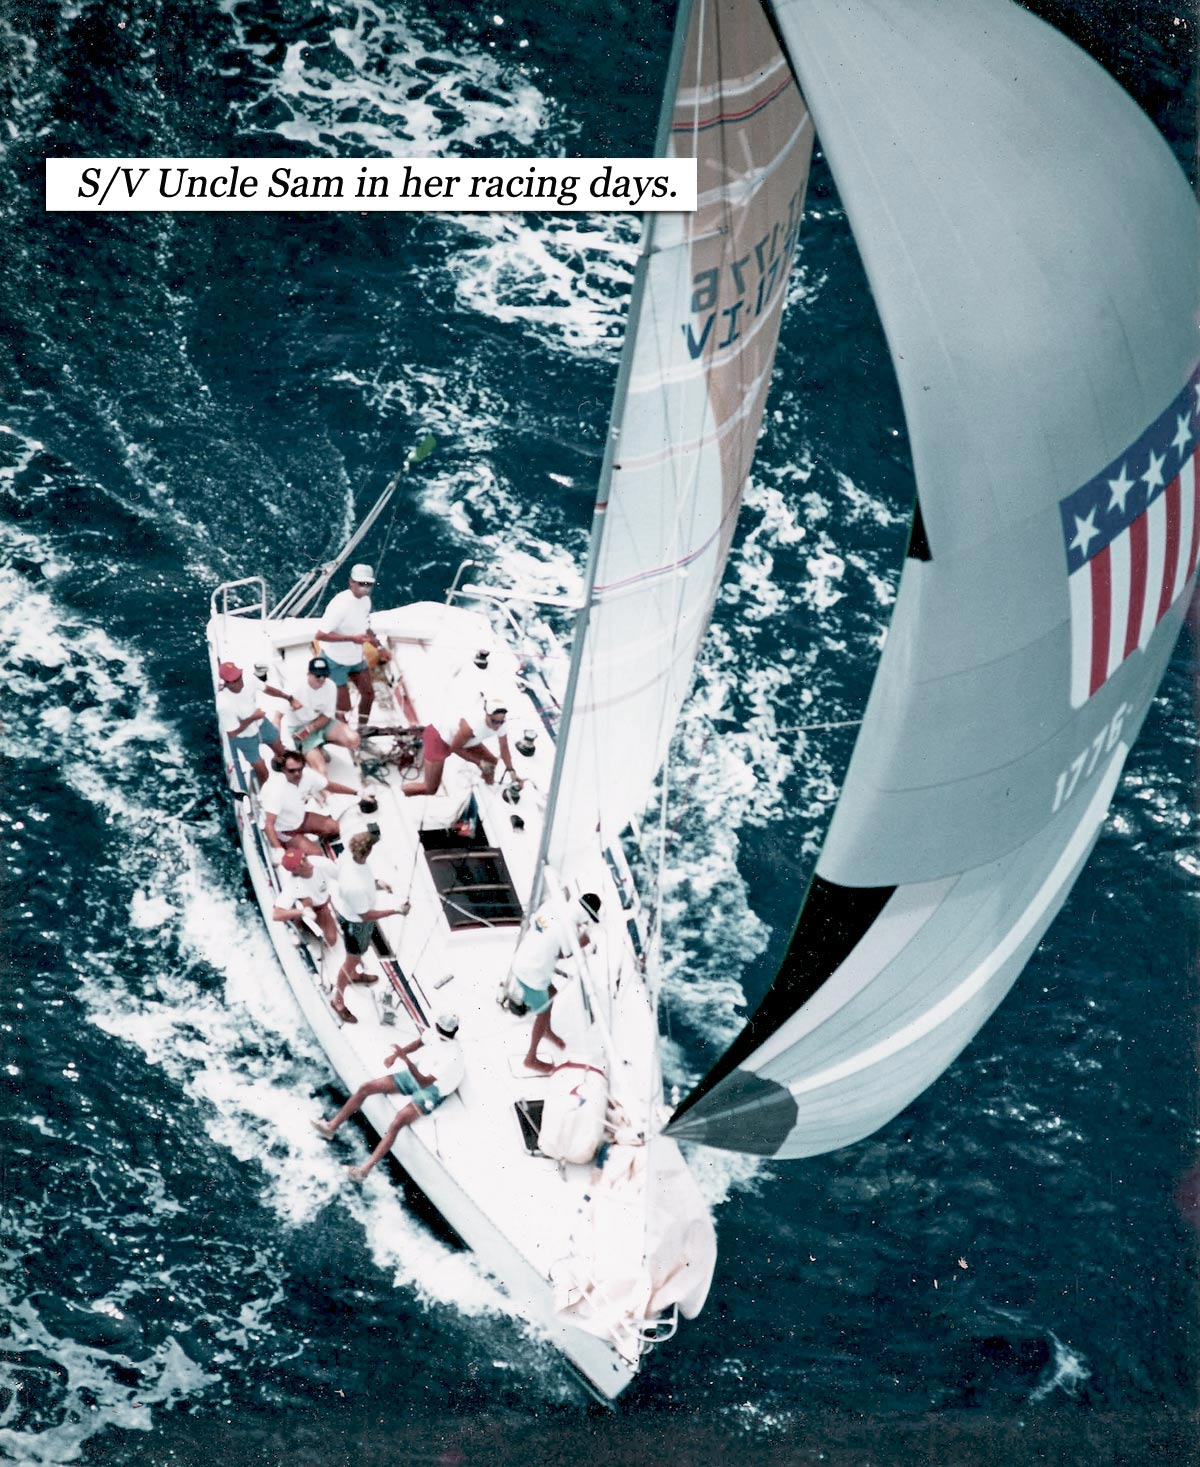 Picture of racing sailboat.